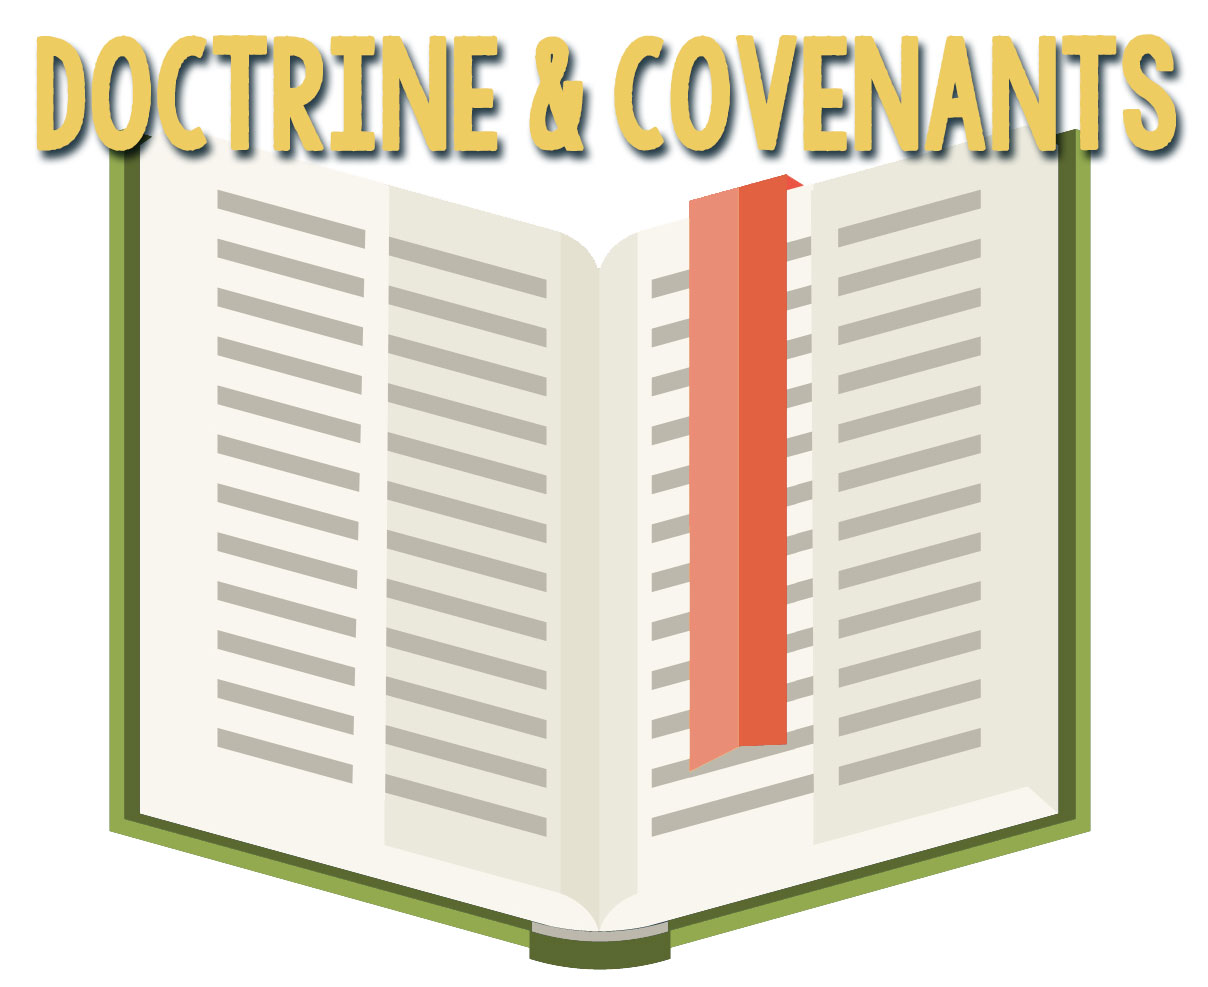 Doctrine & Covenants Products